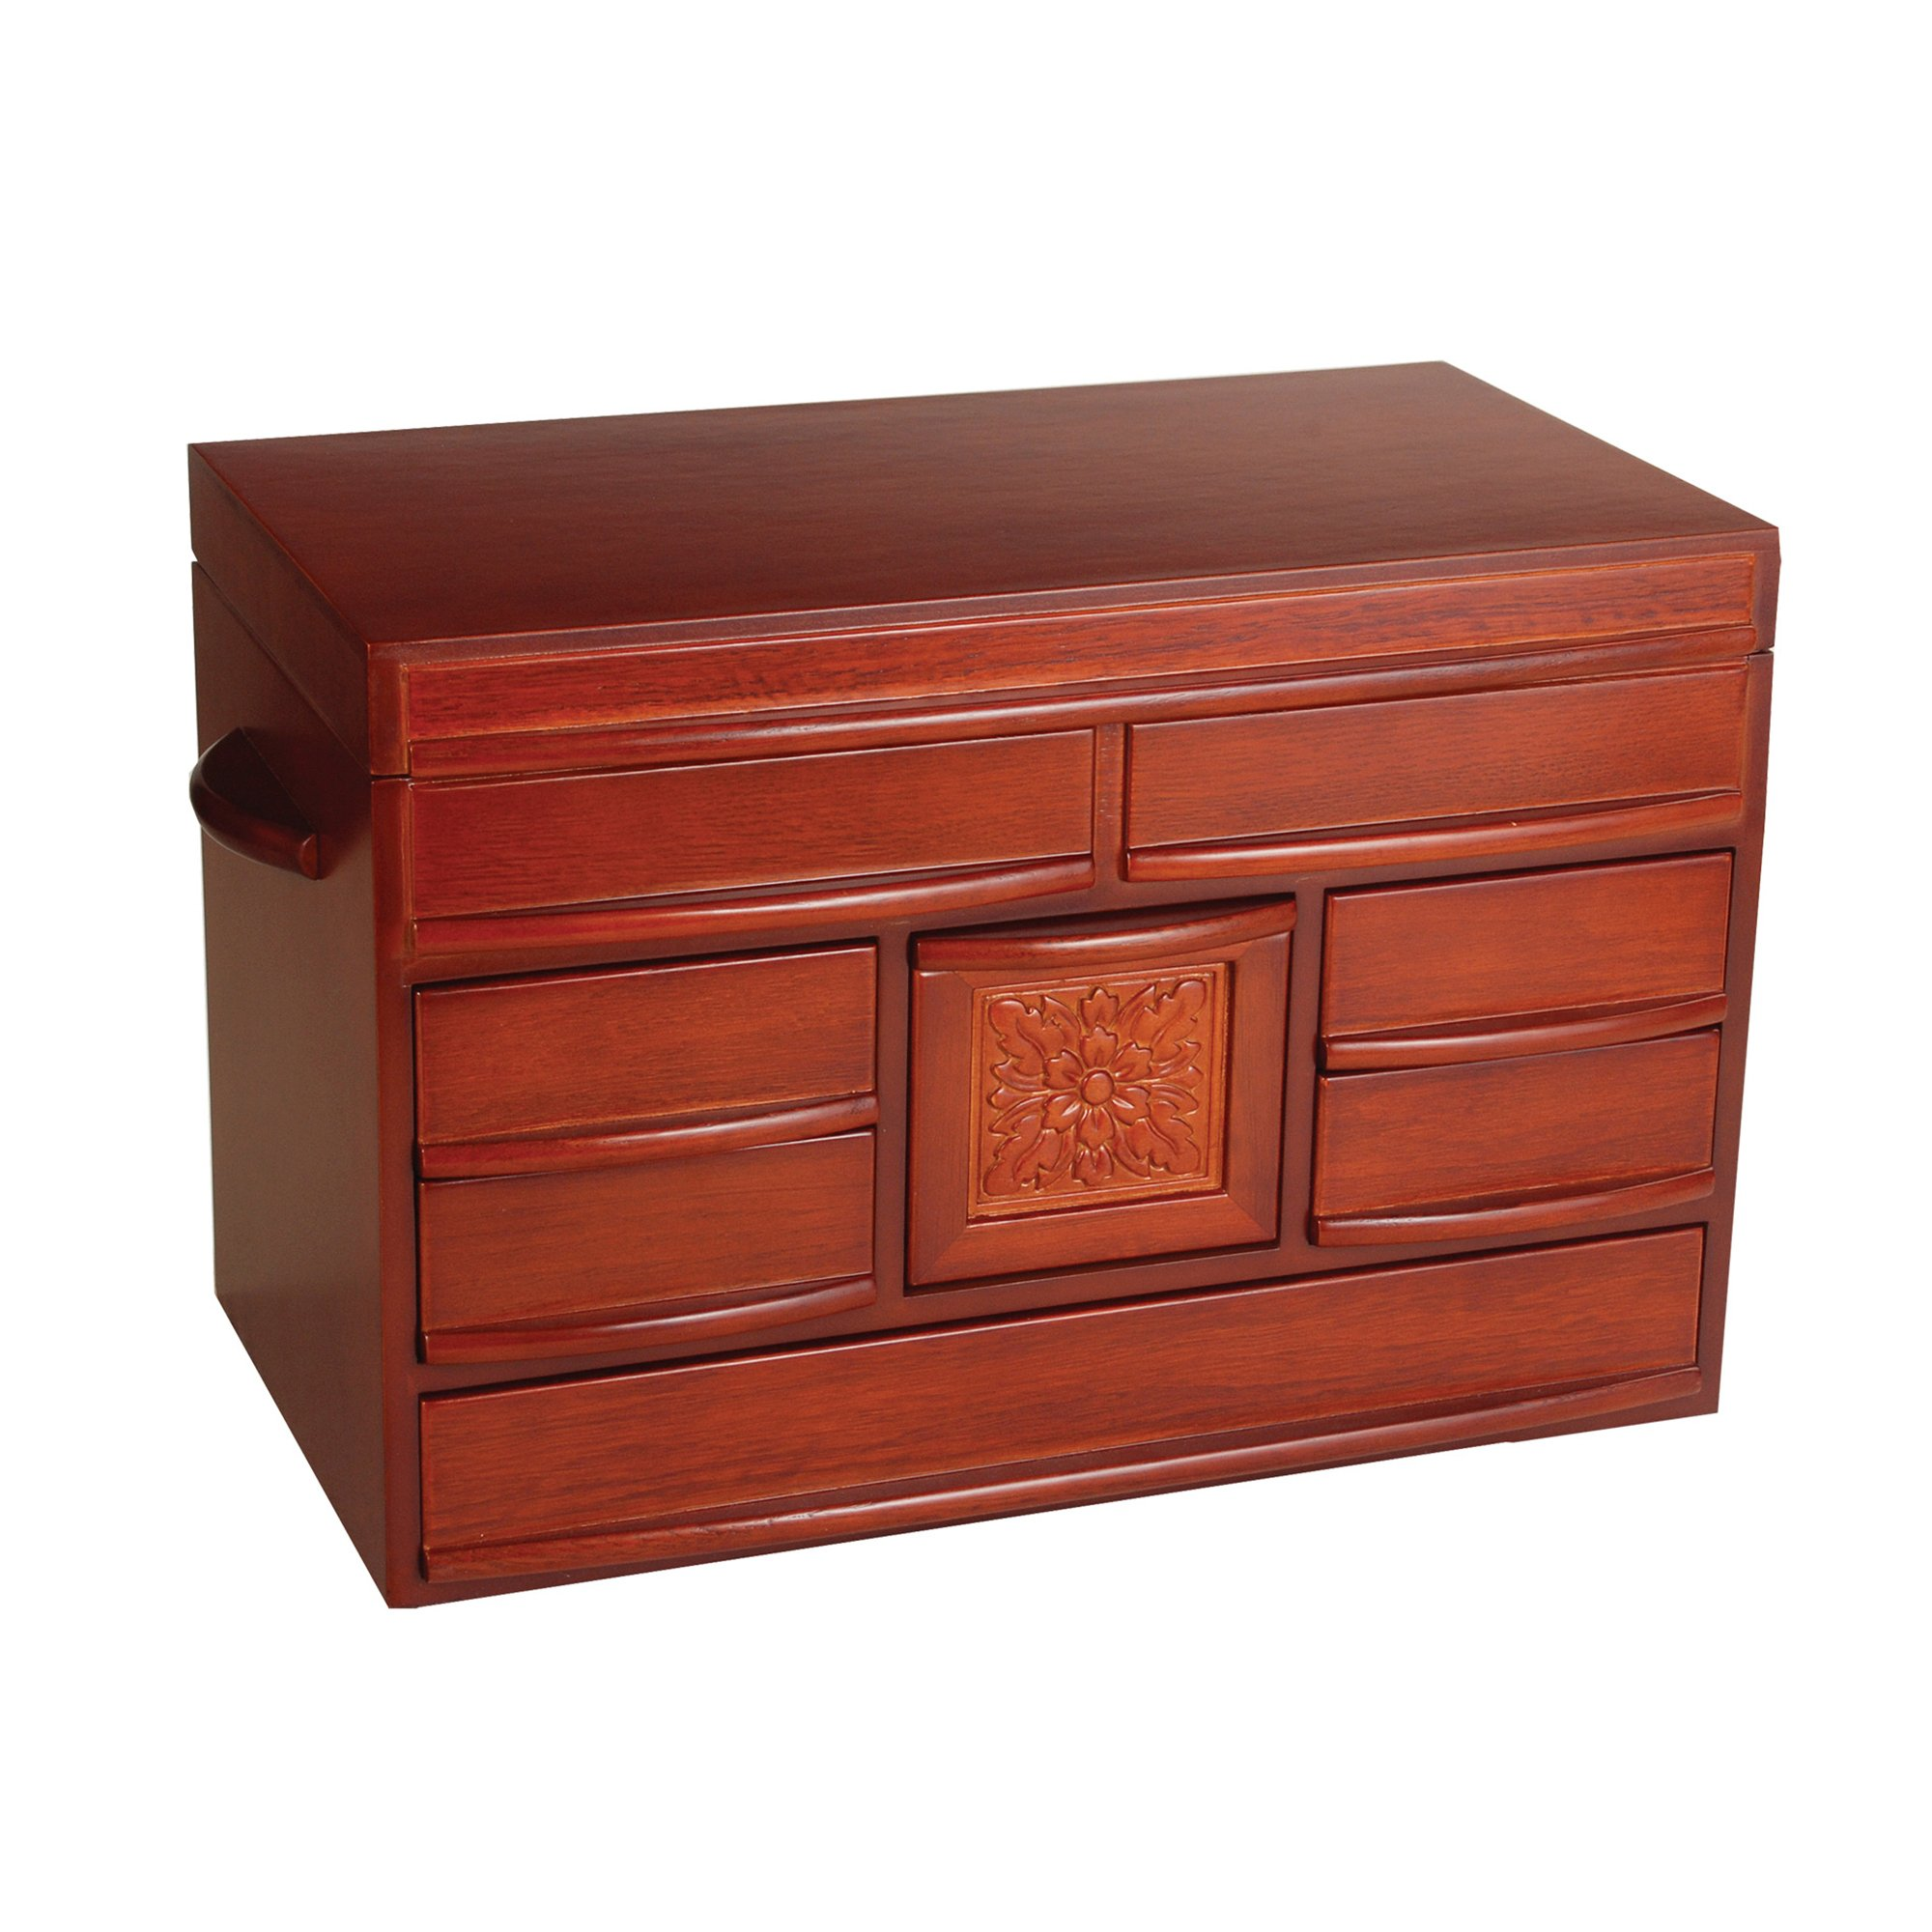 Mele & Co. Empress Wooden Jewelry Box (Walnut Finish) by Mele & Co.